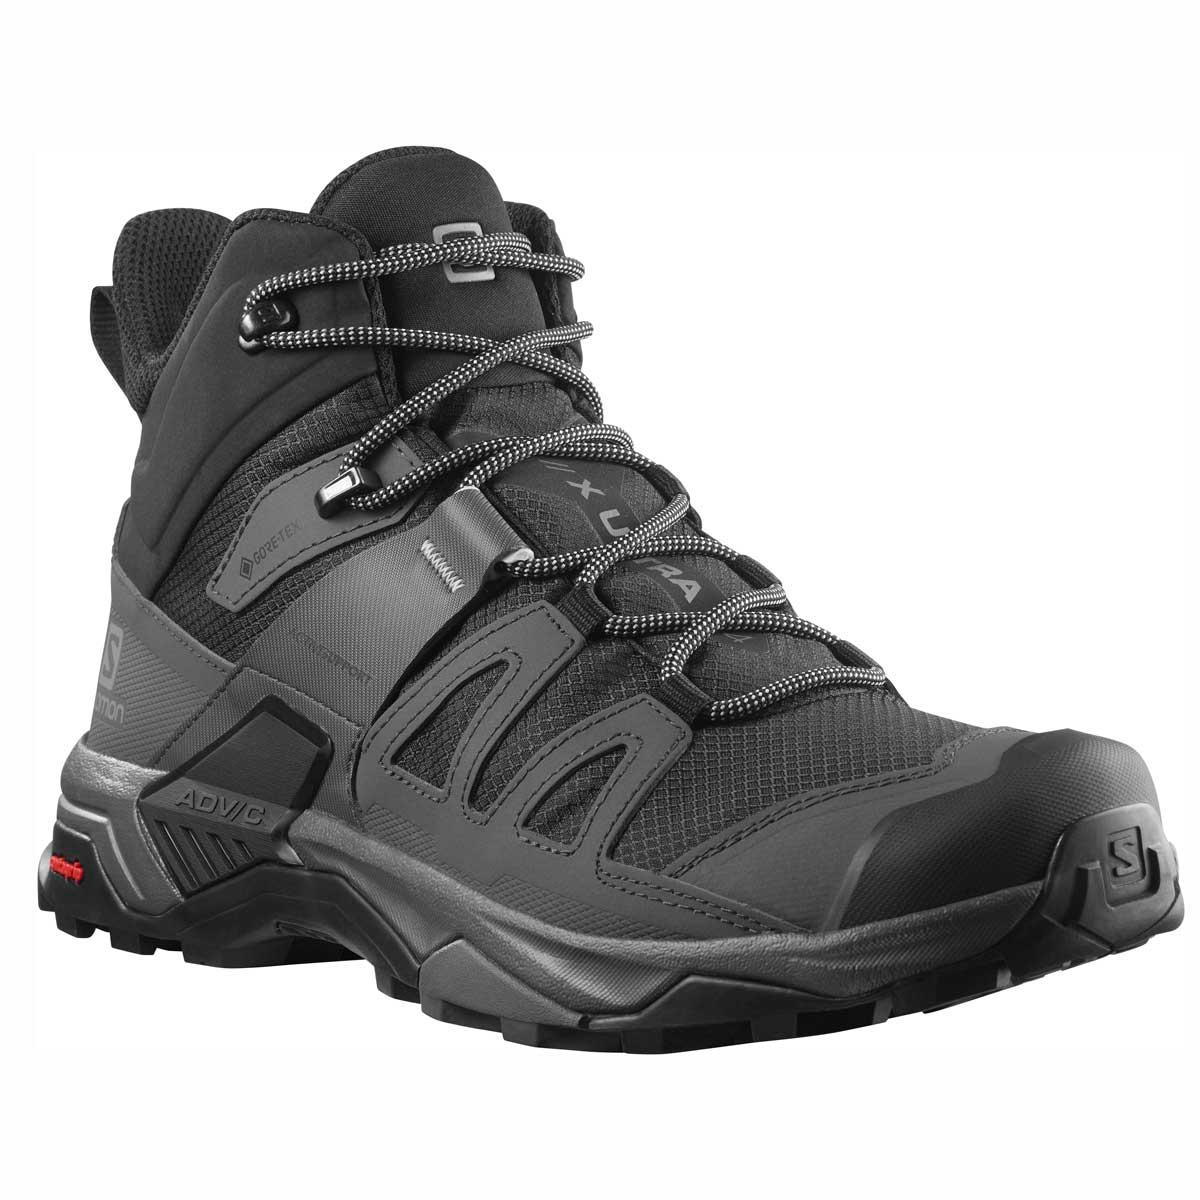 Salomon men's X Ultra 4 Mid GTX hiking shoe in Black and Magnet and Pearl Blue